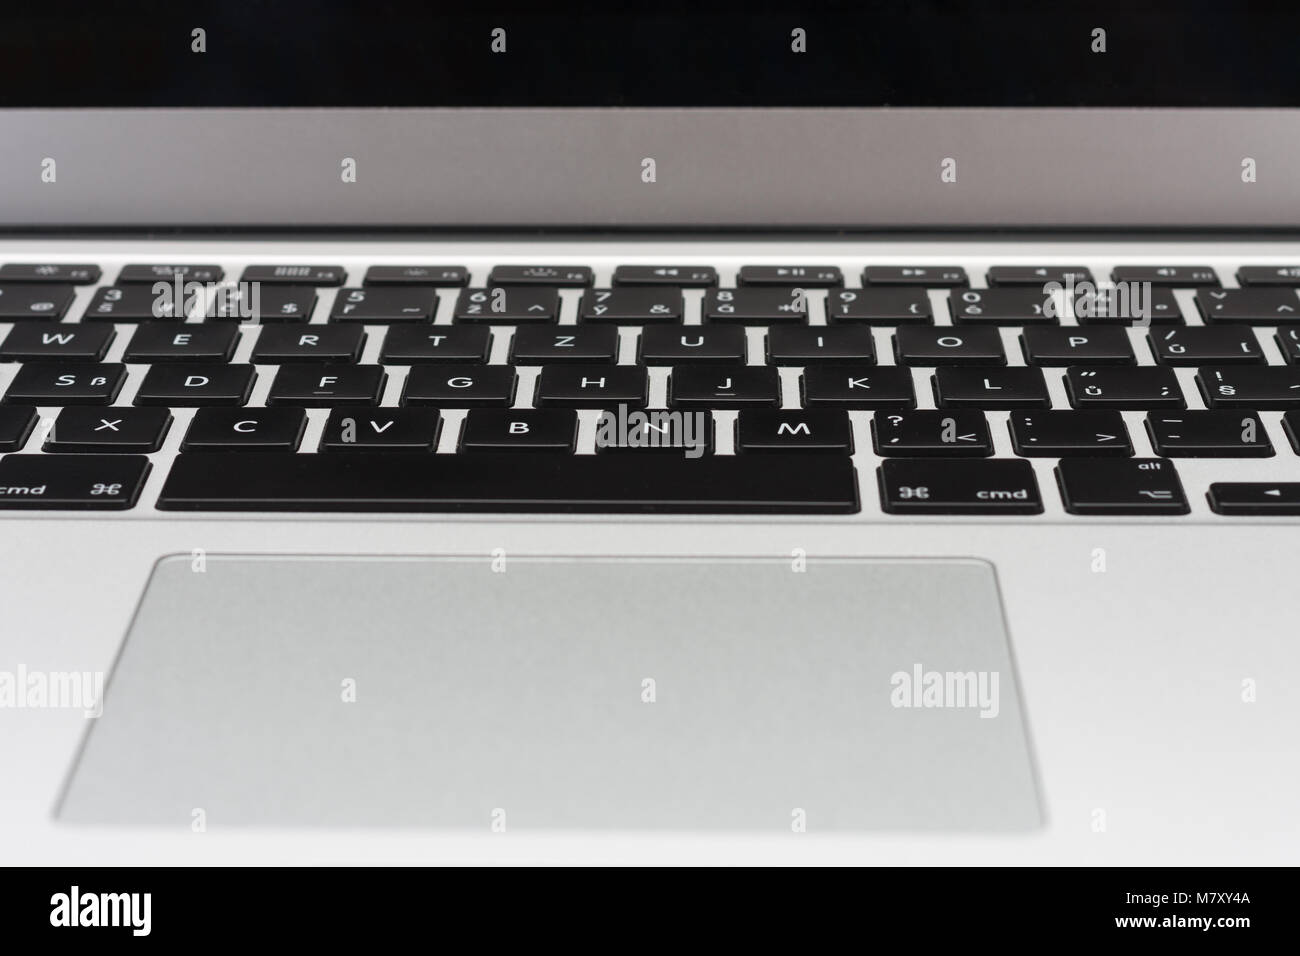 Close up, front view, keyboard on new, modern laptop. - Stock Image